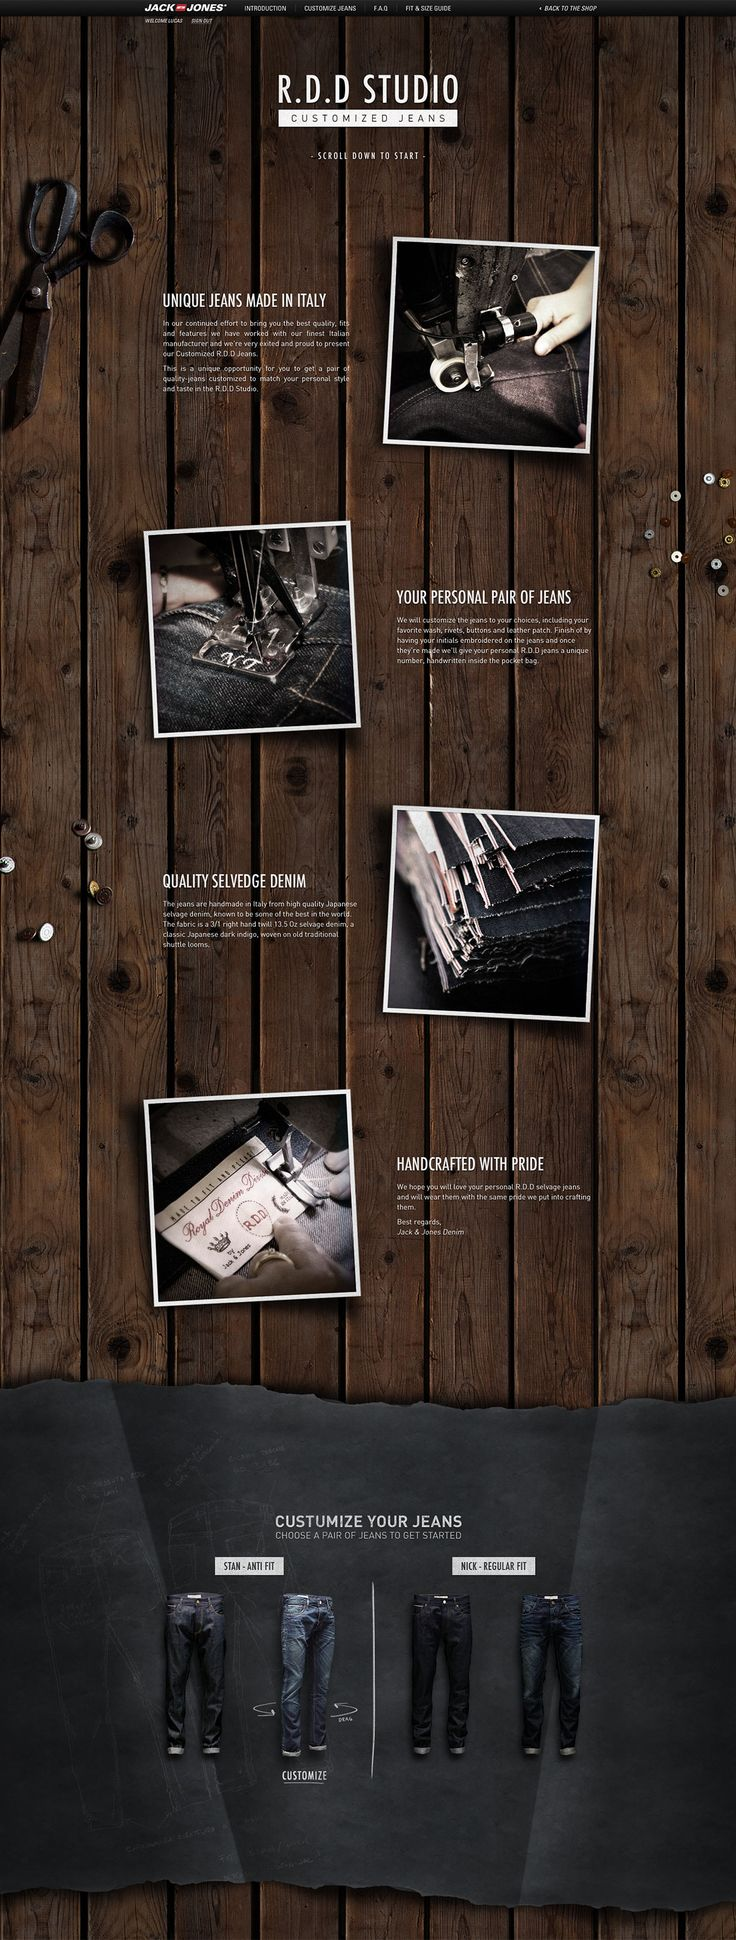 Jeans #shop #online #design #web #webdesign | #webdesign #it #web #design #layout #userinterface #website #webdesign